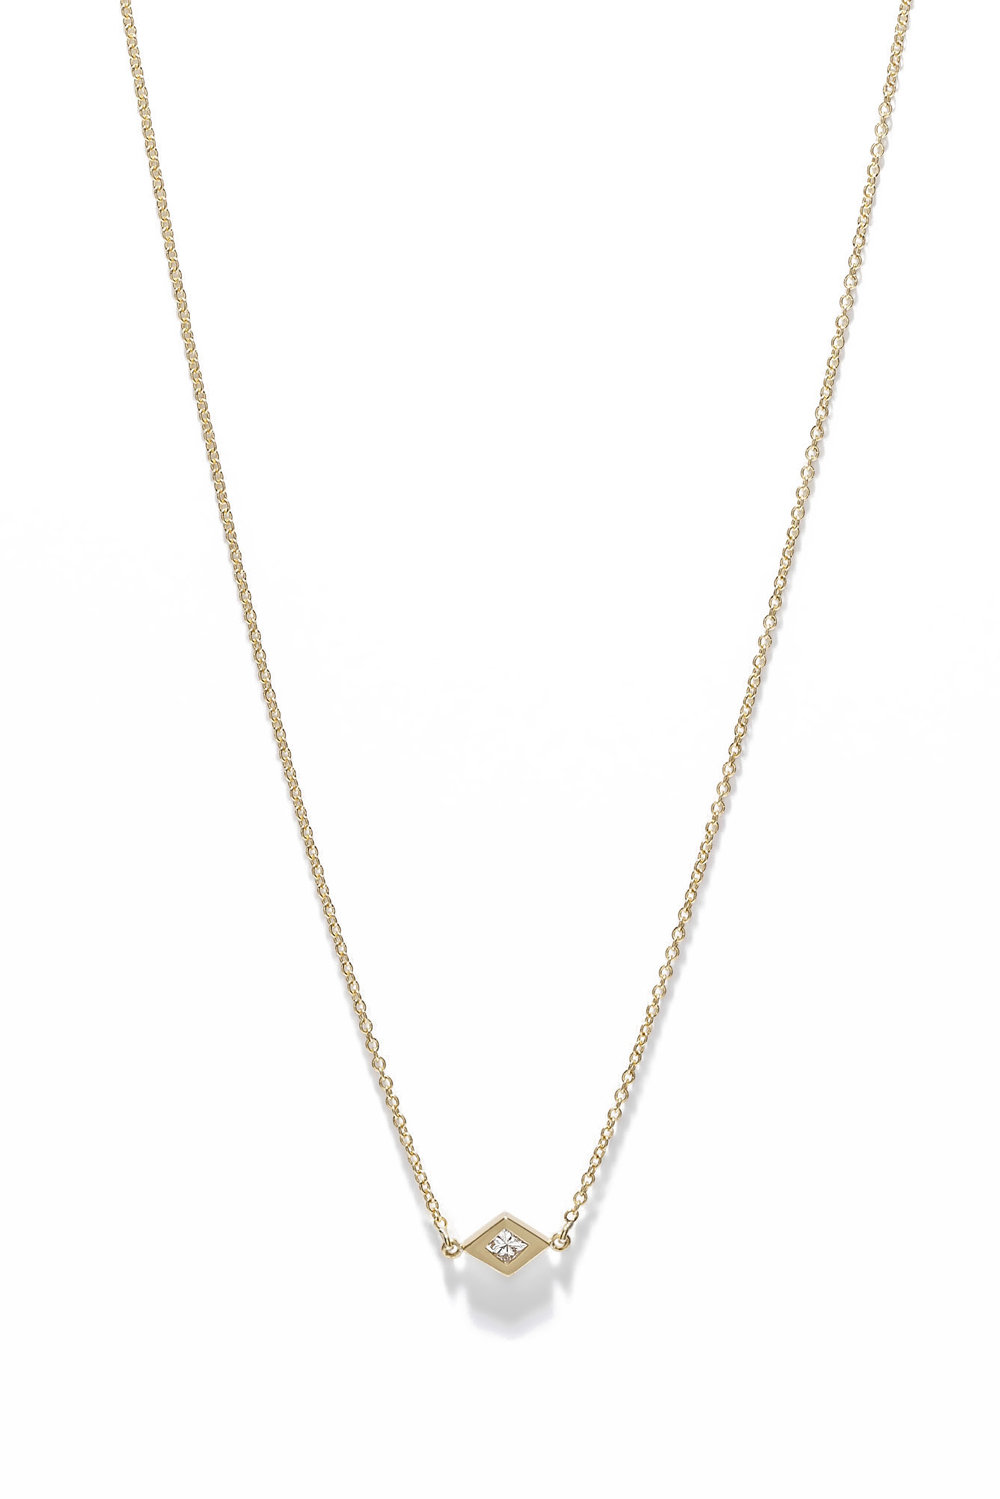 SPARK DIAMONDND NECKLACE YG.jpg